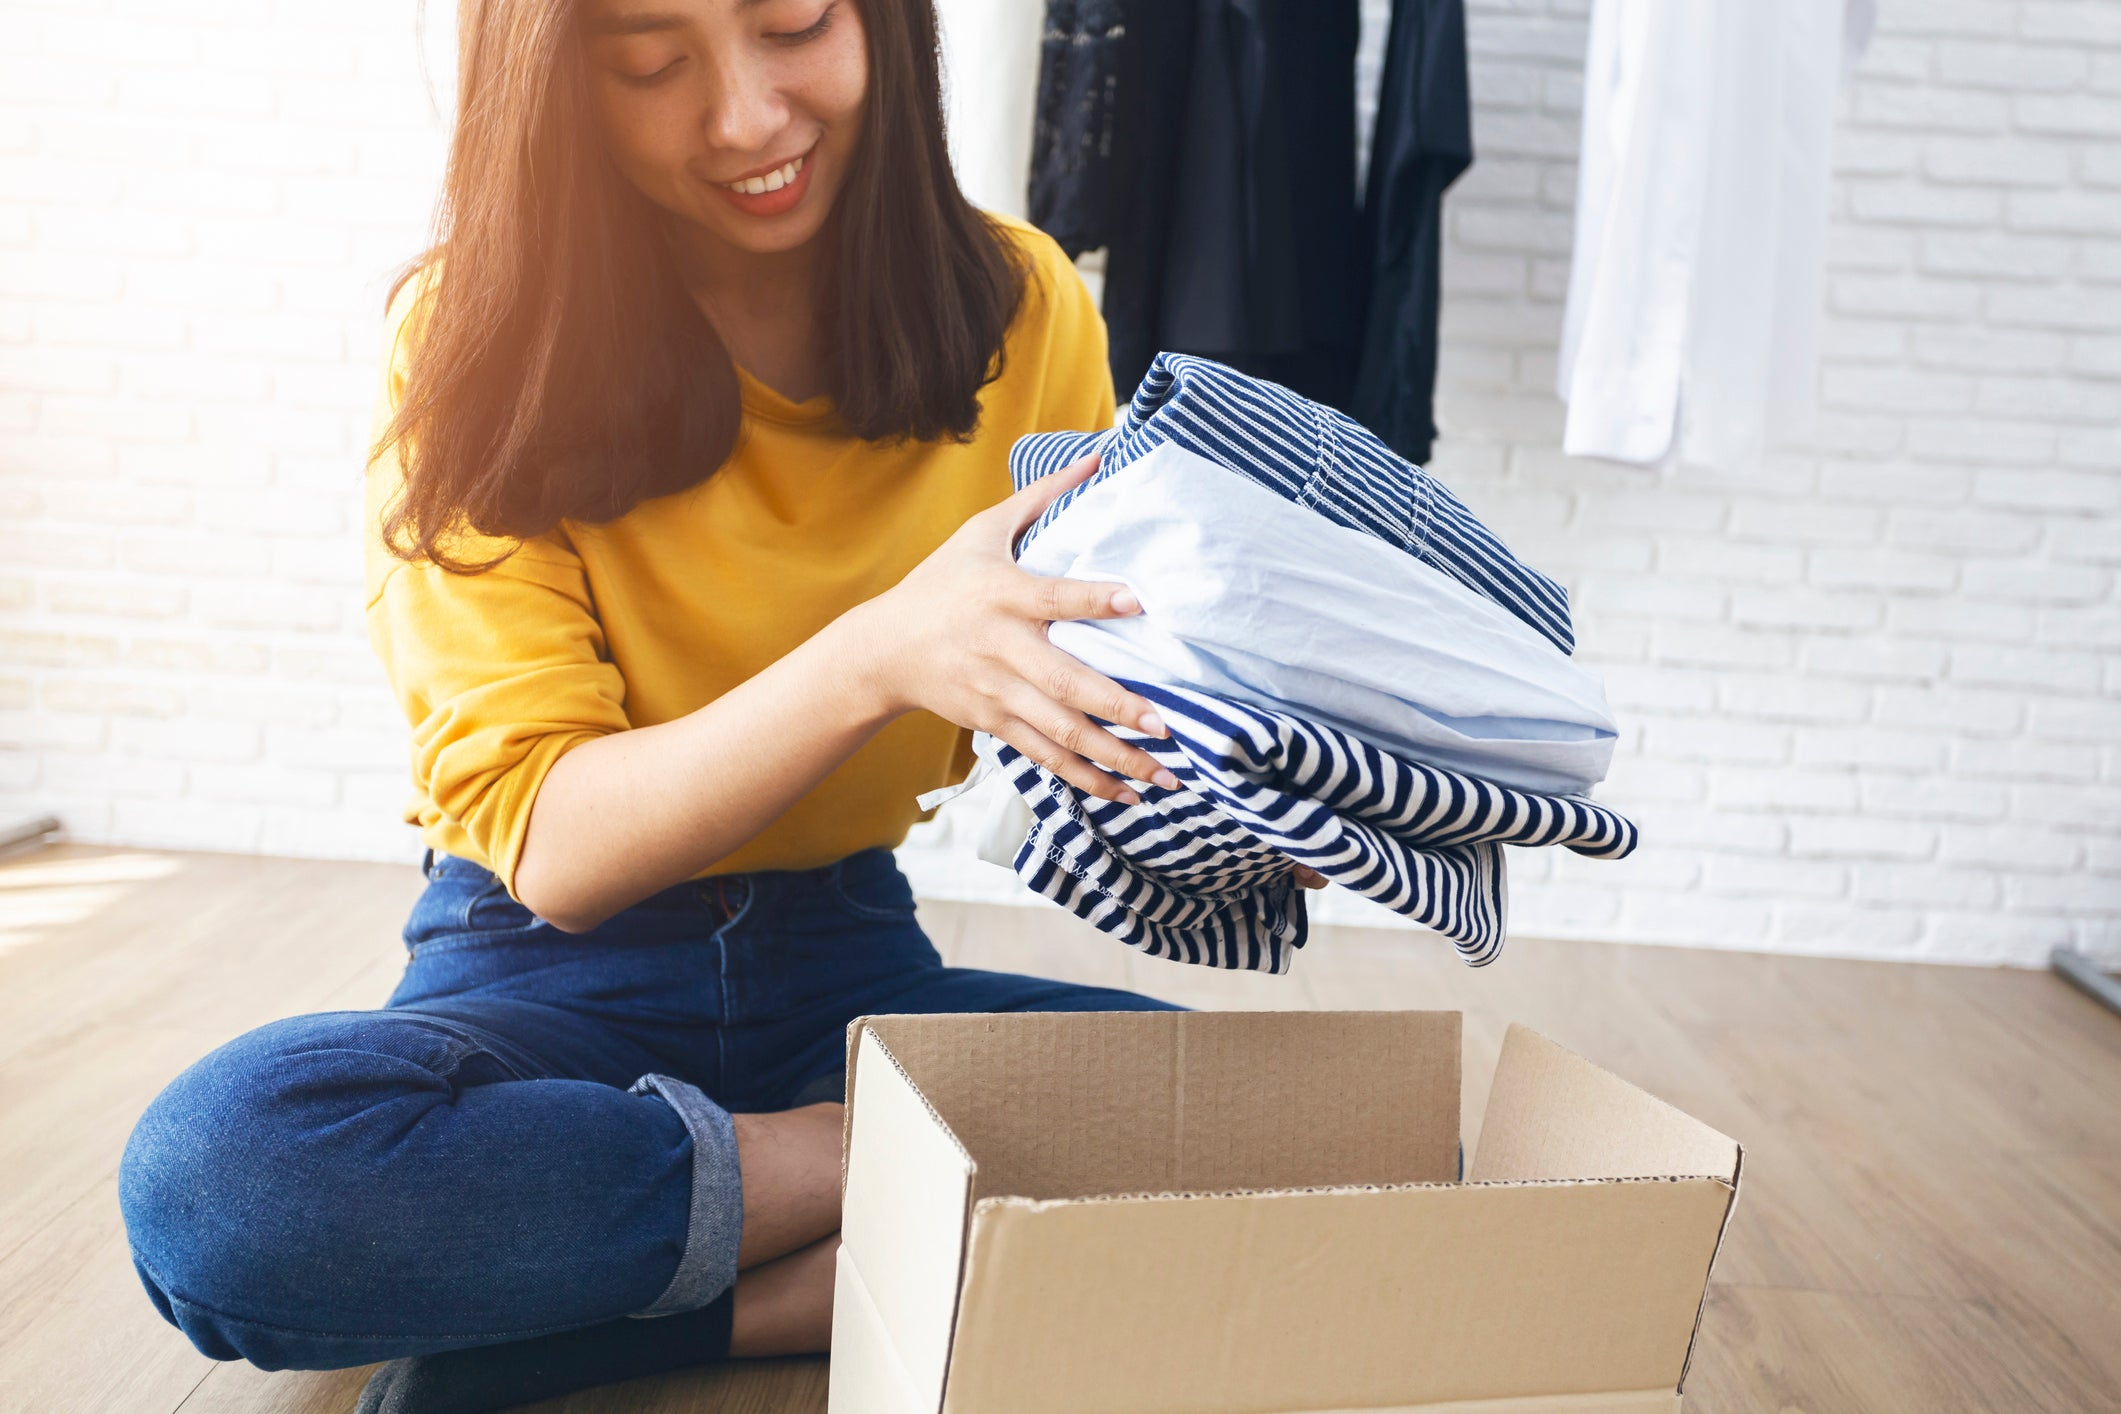 Report: Stitch Fix to Lay Off 1,400 Workers, but Hire 2,000 Elsewhere | The Motley Fool